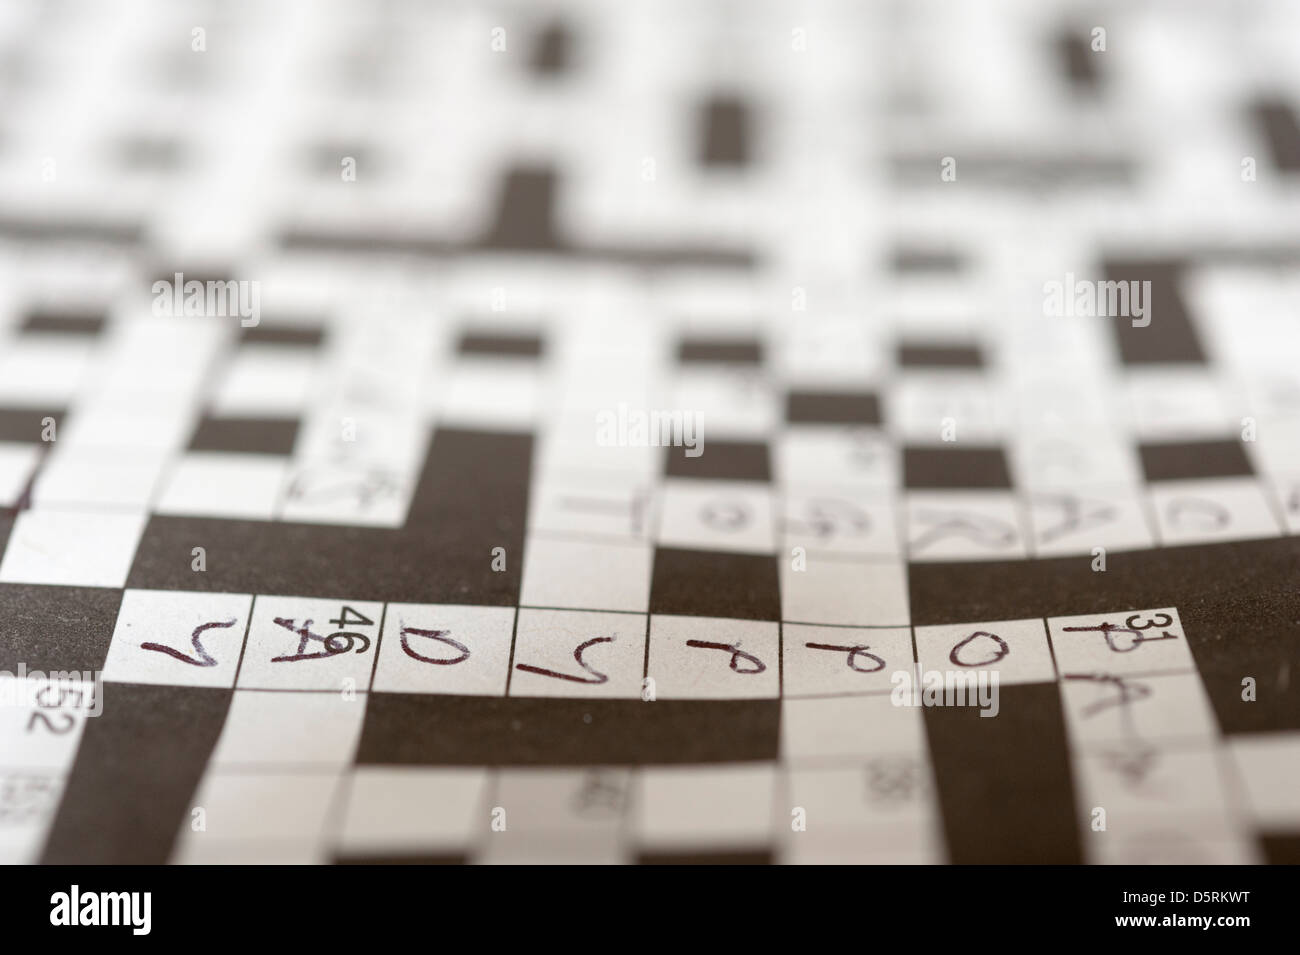 Close up of crossword puzzle with word poppy day visible. Selective focus so that only one word is in focus - Stock Image